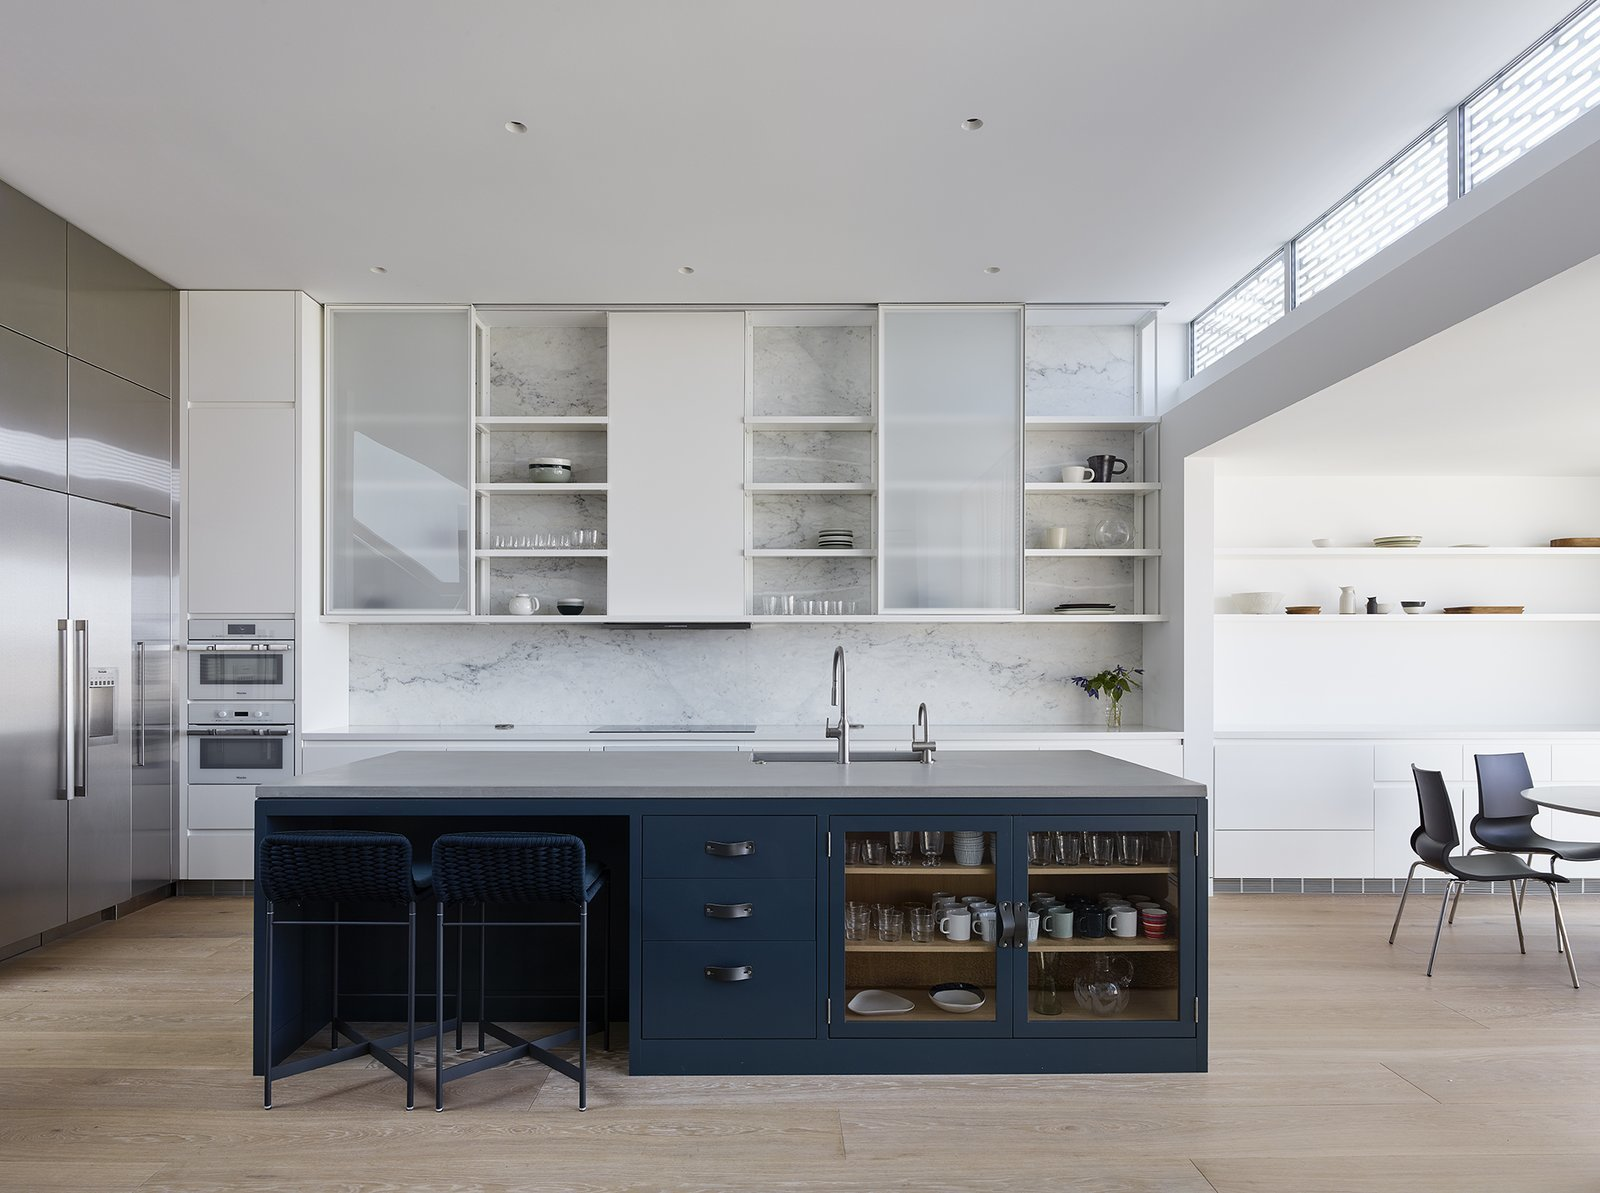 The home's kitchen features dual Miele ovens, Thermador refrigerator and freezer, and Thermador induction cooktop. A feature wall clad in natural Carrara marble sits behind sliding cabinet uppers. Paola Lenti Heron counter stools in 'verde scuro,' coordinate with custom cabinet fronts, accented with Spinneybeck leather pulls. Tagged: Kitchen, White, Light Hardwood, Marble, Ceiling, Recessed, Refrigerator, Wall Oven, Range, Ice Maker, Drop In, and Open.  Best Kitchen Light Hardwood Drop In Photos from A Historic Victorian in San Francisco Is Meticulously Transformed Into a Modern Family Home